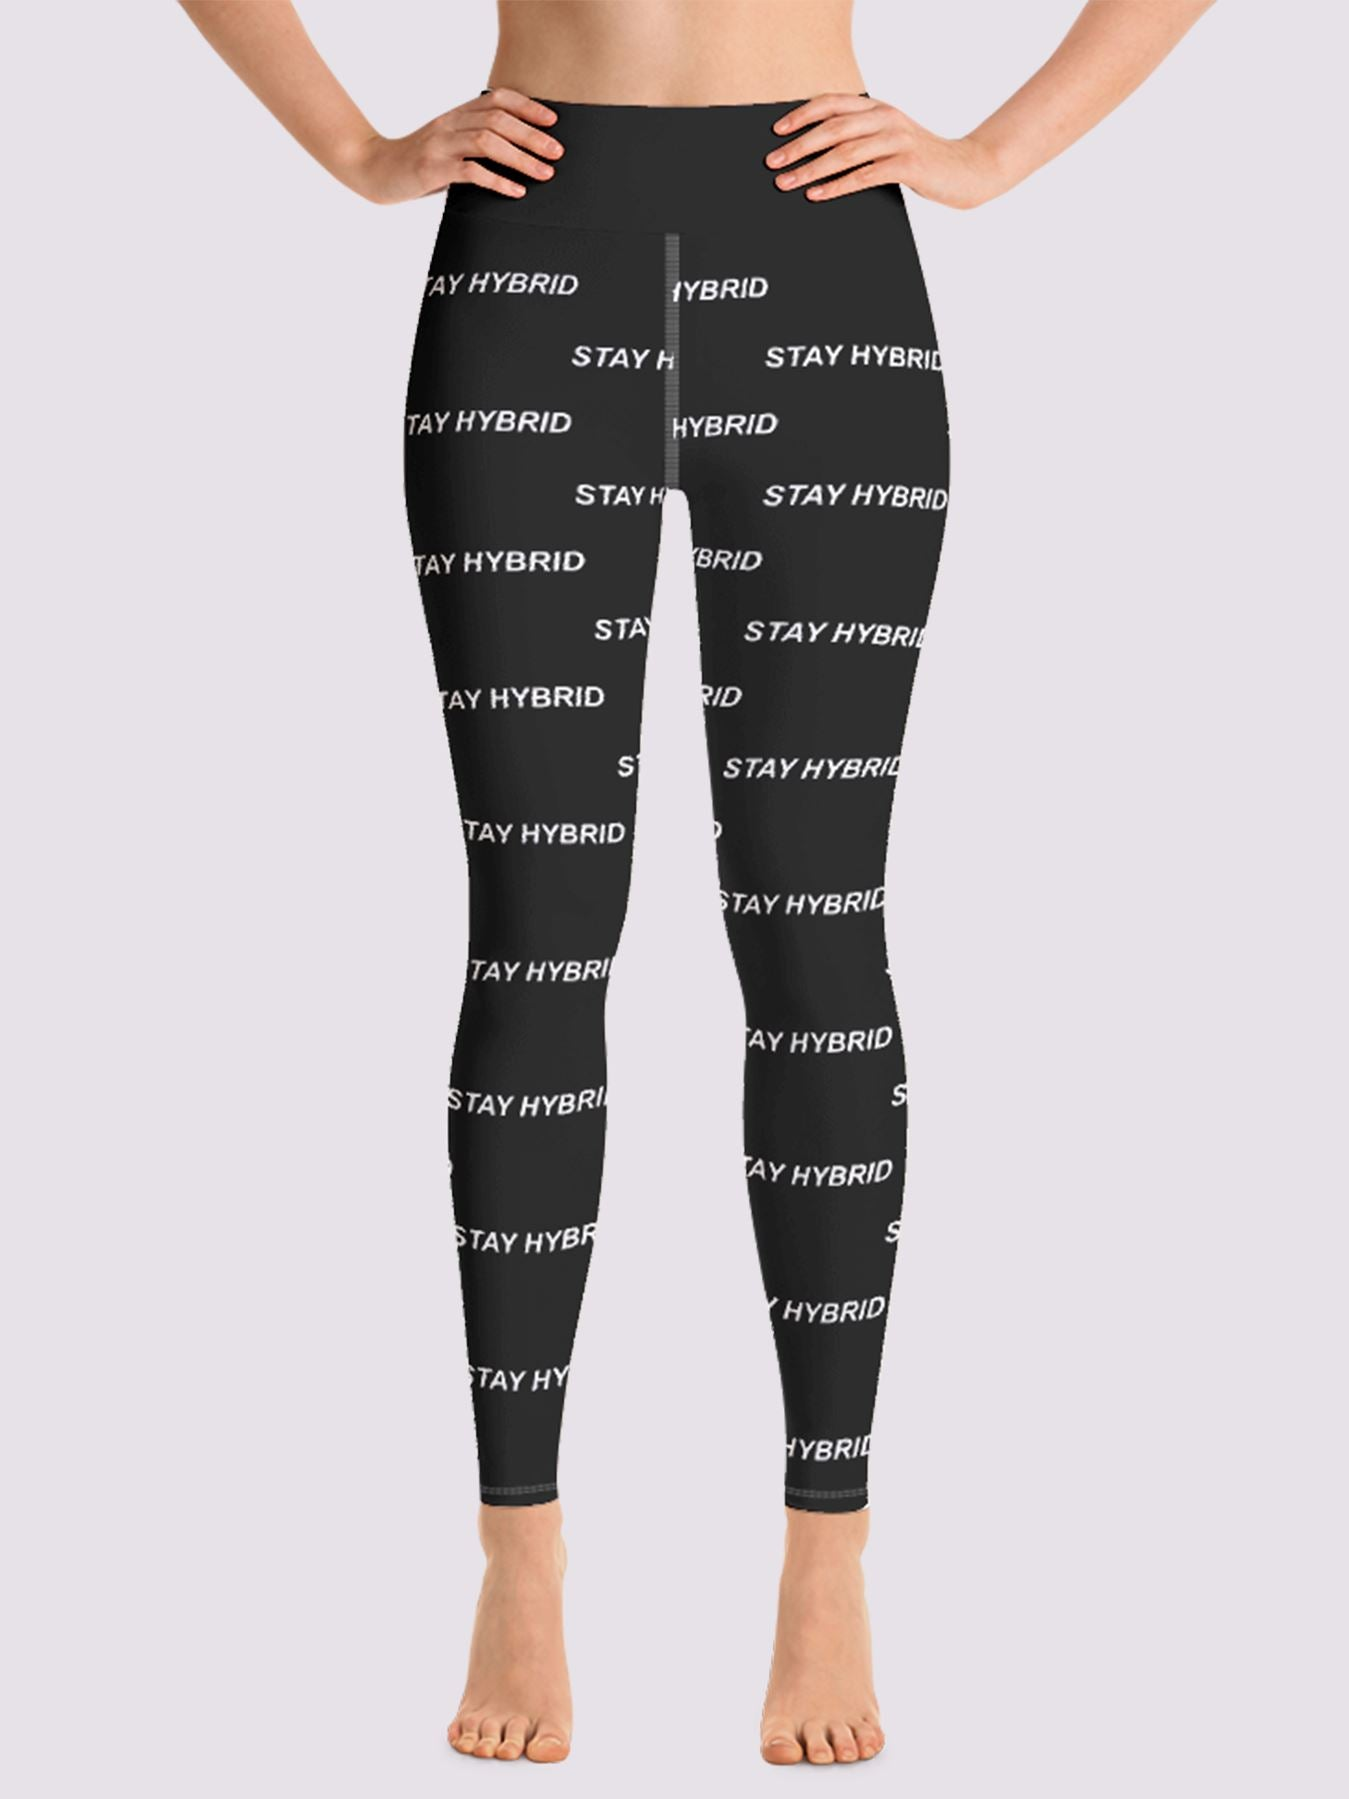 HYBRID NATION WOMEN SPORT FLEX LEGGINGS Women's Leggings Printful XS Black